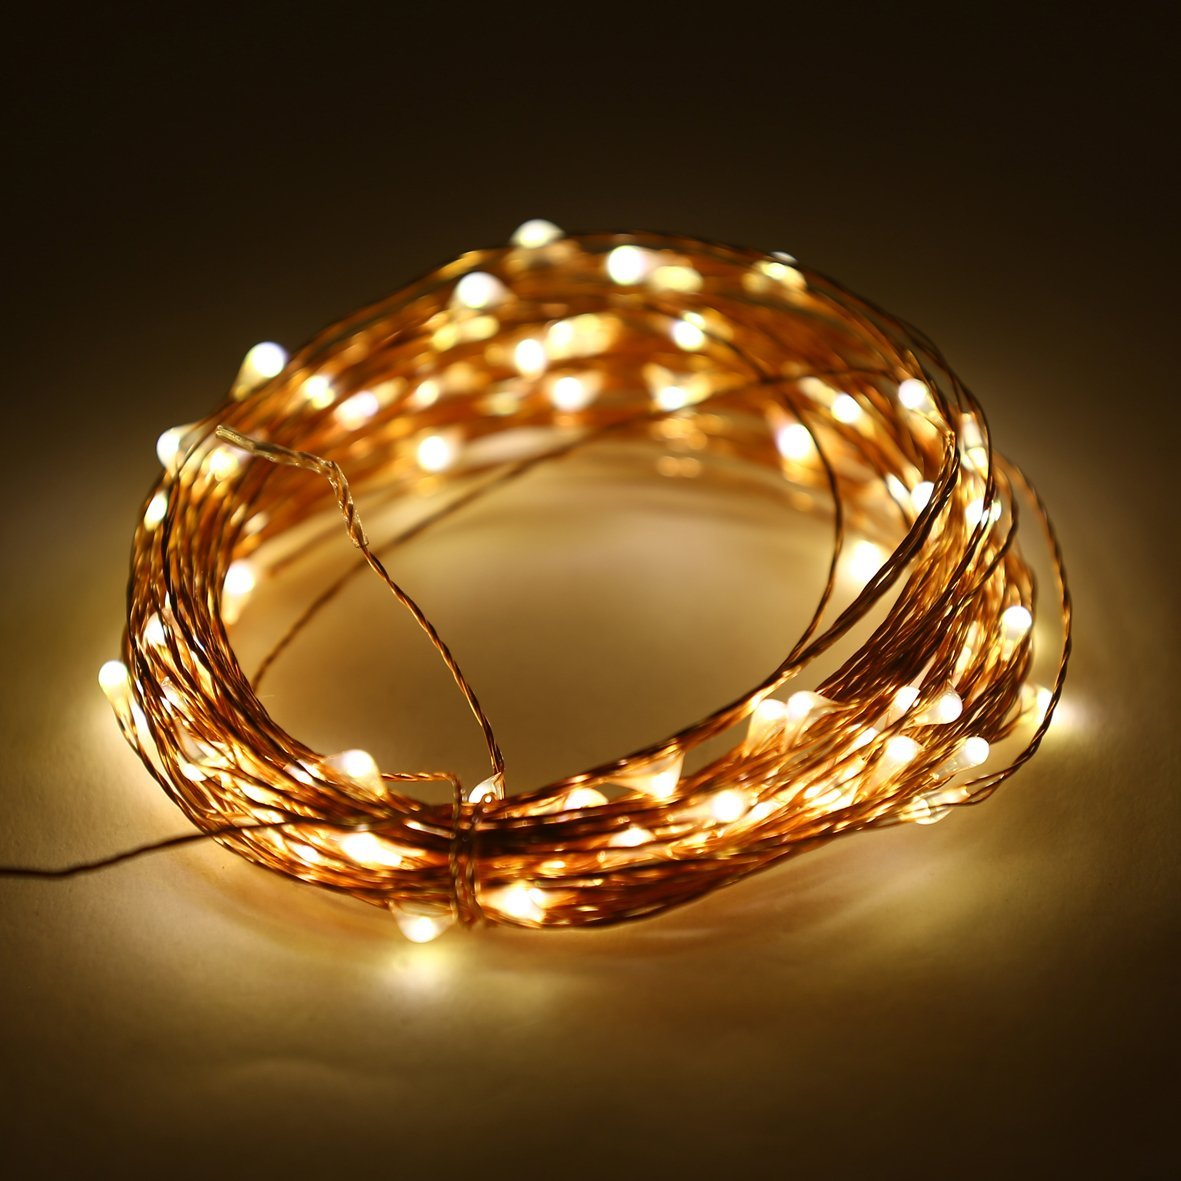 E-Age Indoor and Outdoor Waterproof Battery Operated String Lights on 33 Ft Long Ultra Thin Copper String Wire with Timer (Warm White)